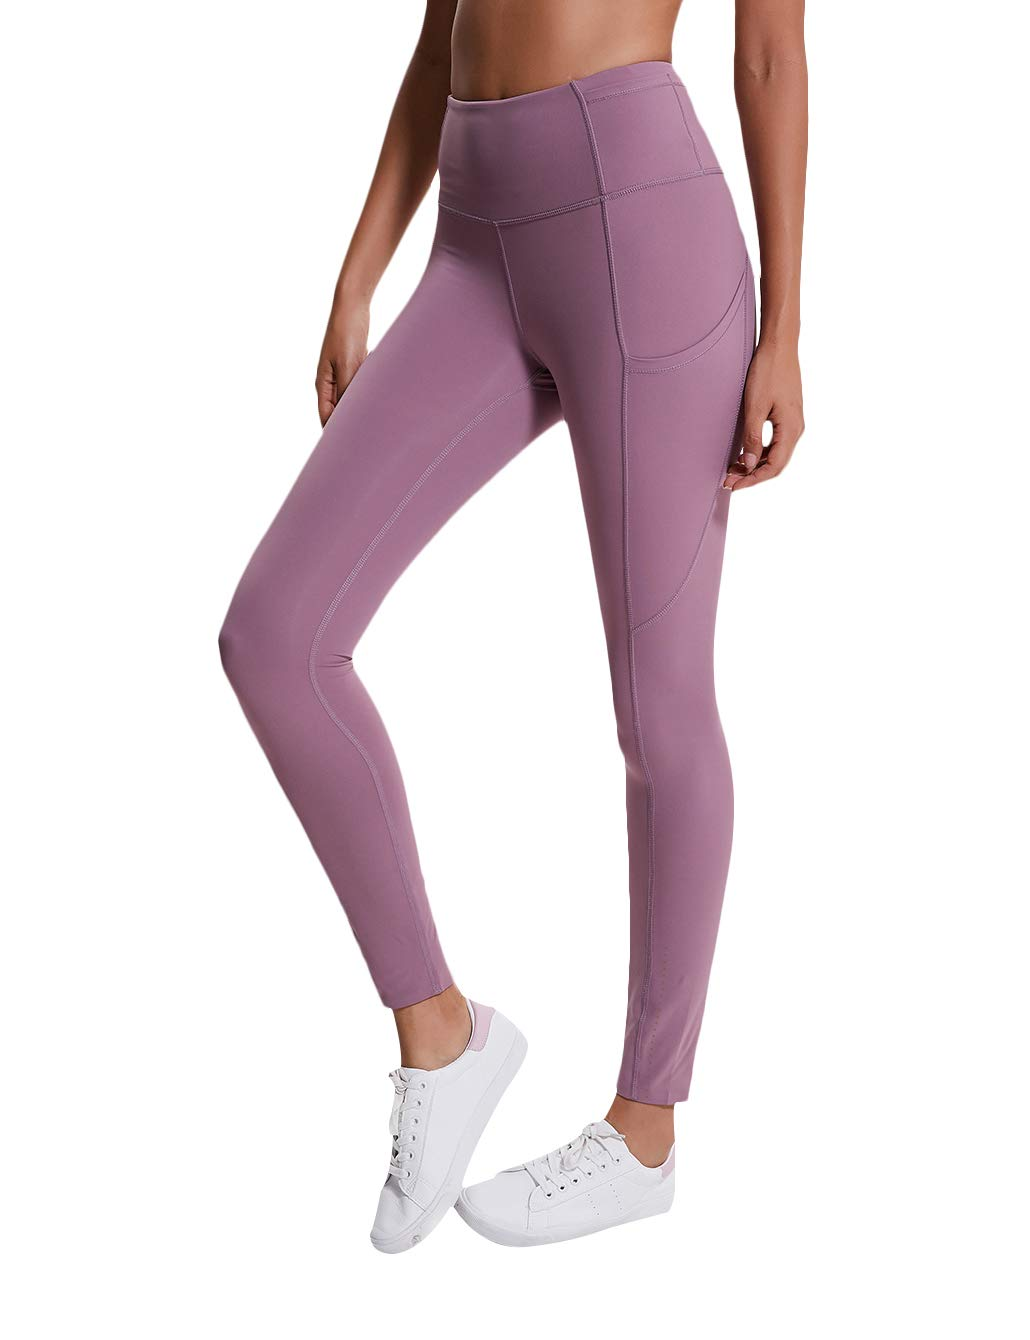 AJISAI Women High Waist Leggings with Pockets,Tummy Control Workout Running Stretch Yoga Pants Color Vintage Plum Size S